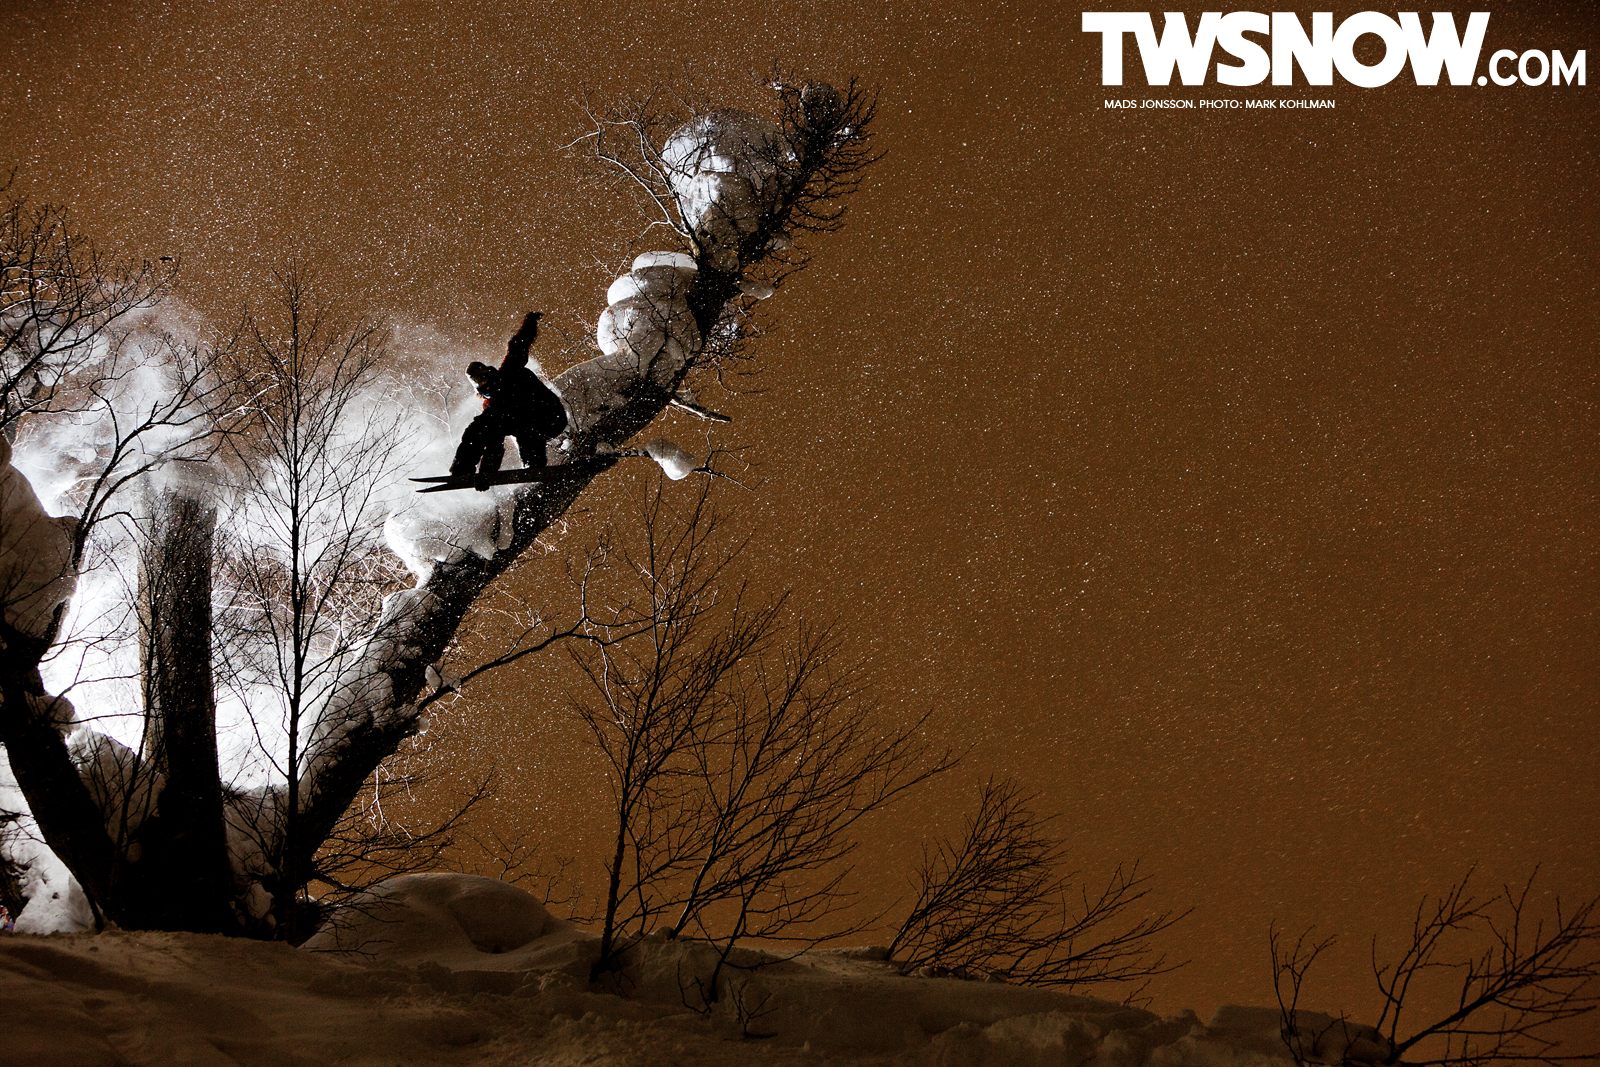 Wallpaper Wednesday Powder Surfing in Japan TransWorld SNOWboarding 1600x1067